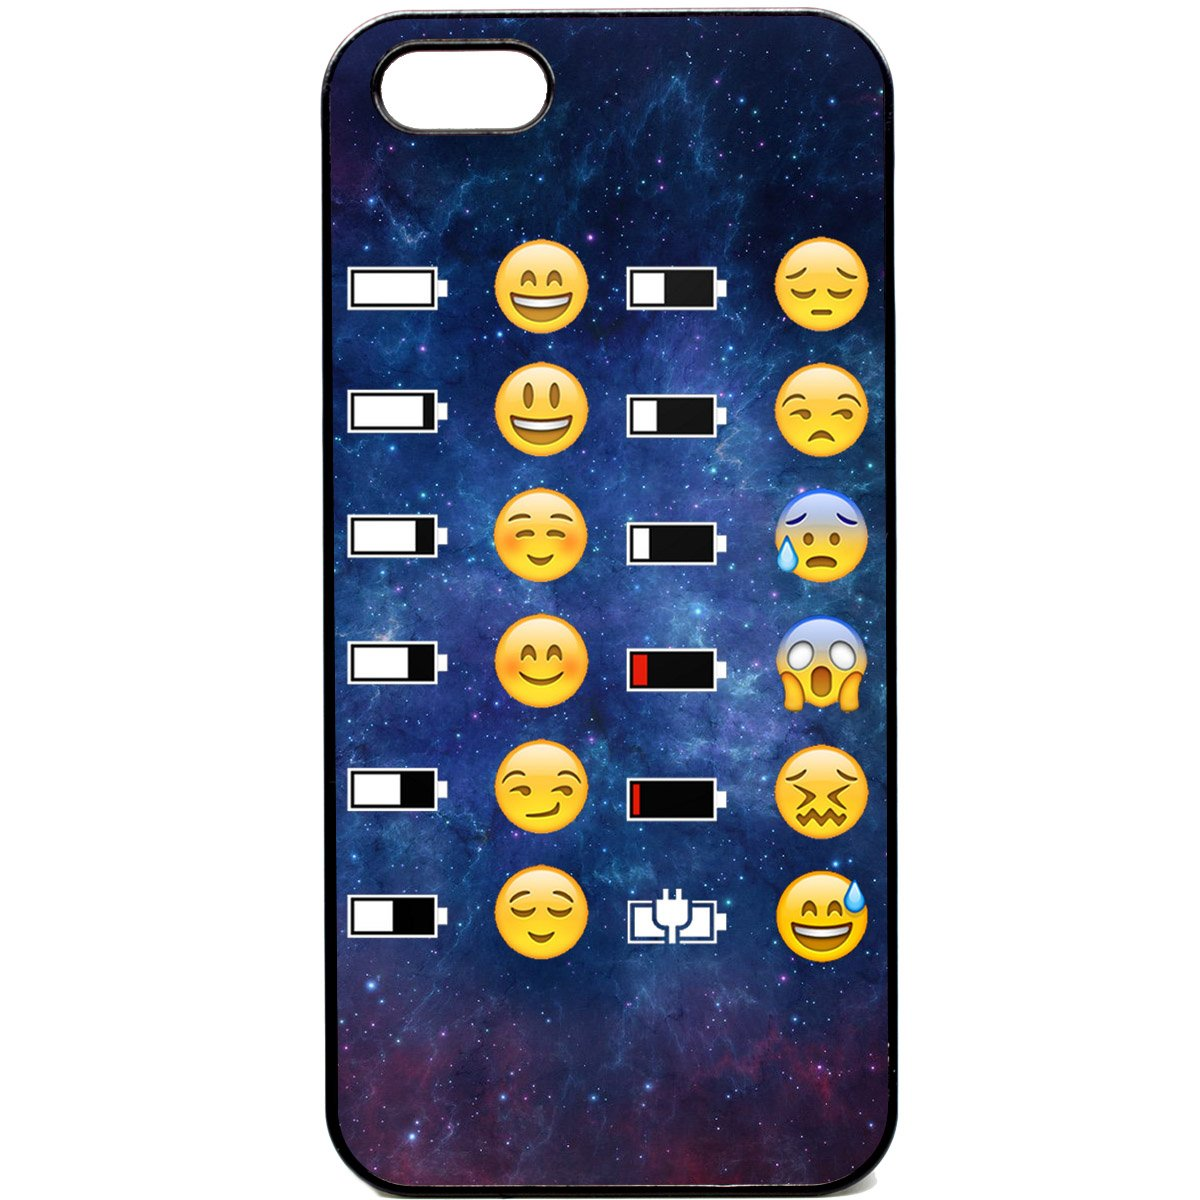 iphone 7 phone cases funny